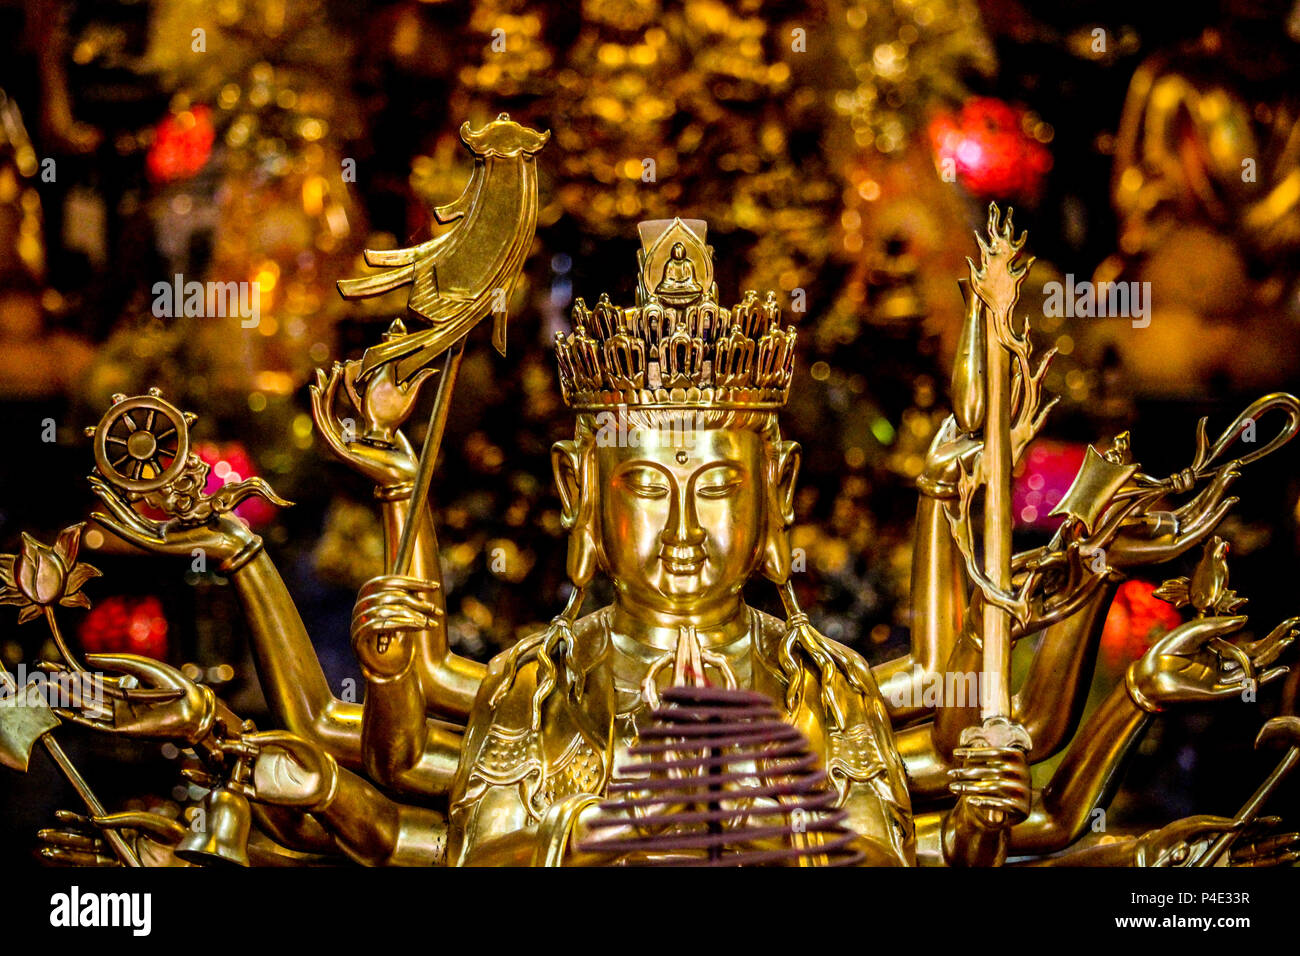 Hanoi, Vietnam - March 15, 2018: Detail of a golden Buddha statue at the interior of the One Pillar Pagoda, one of Hanoi's landmarks - Stock Image